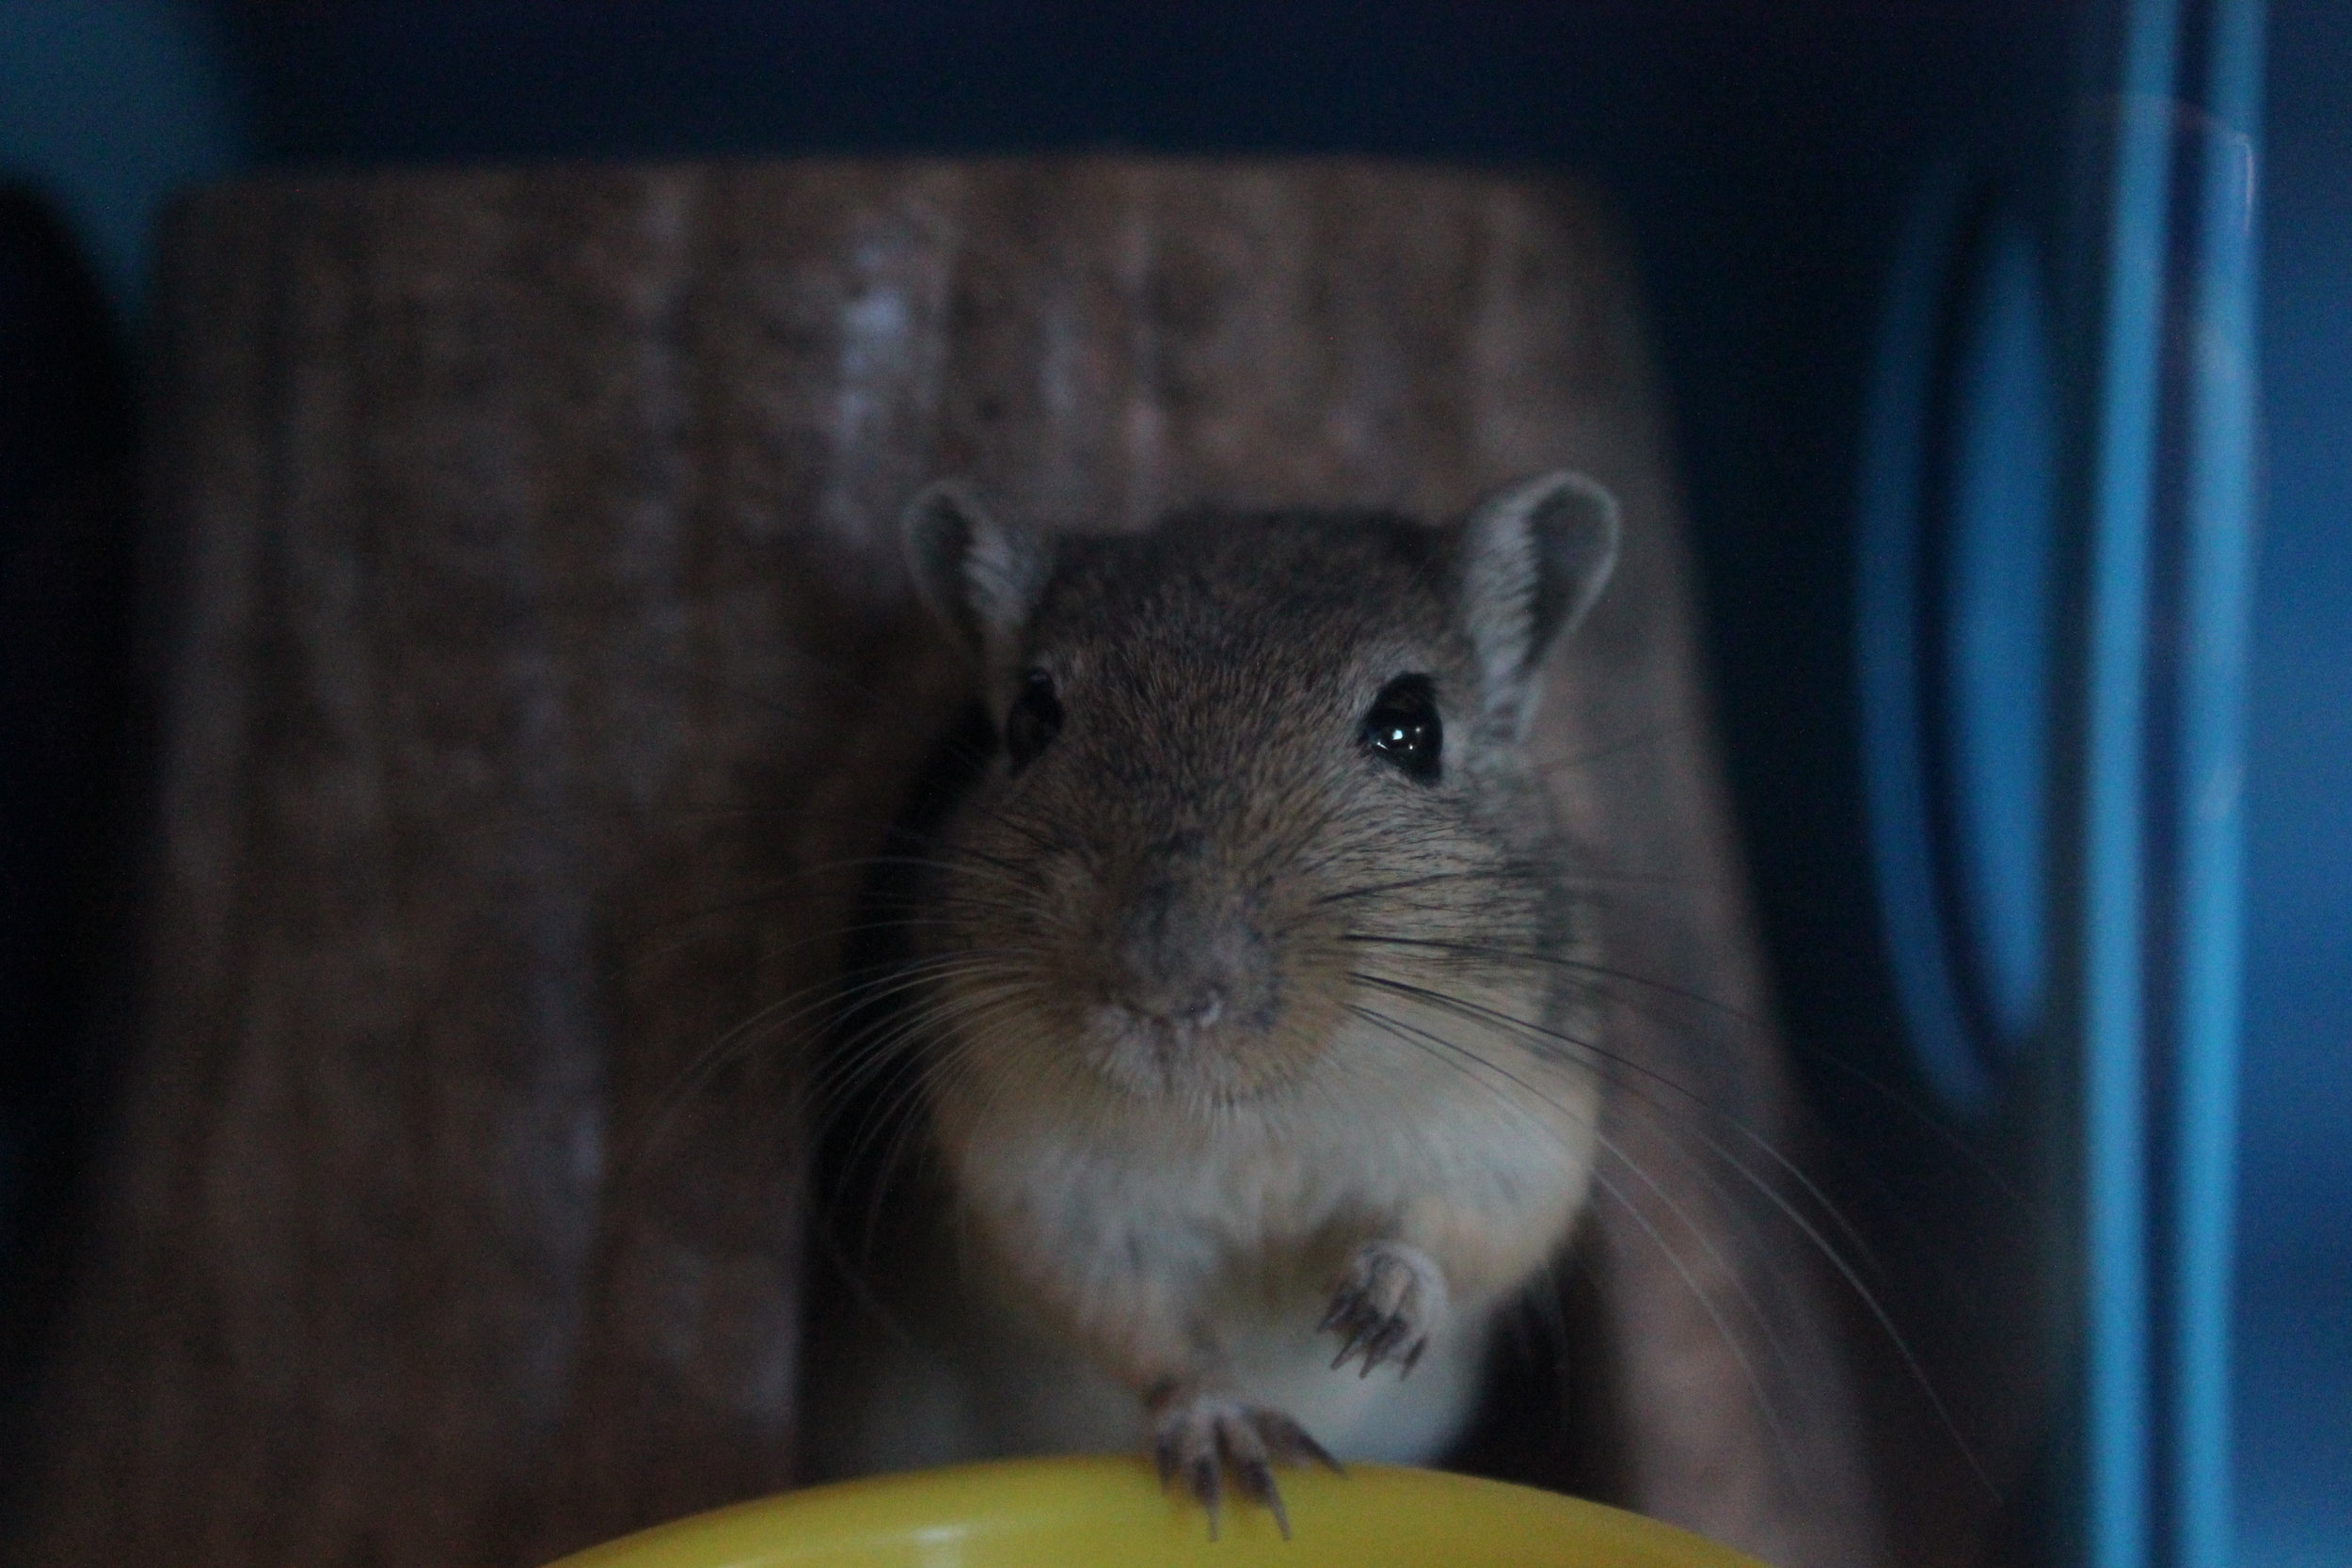 Baby Hammy - When he first came to us, he was quite shy and not very trusting of us yet.